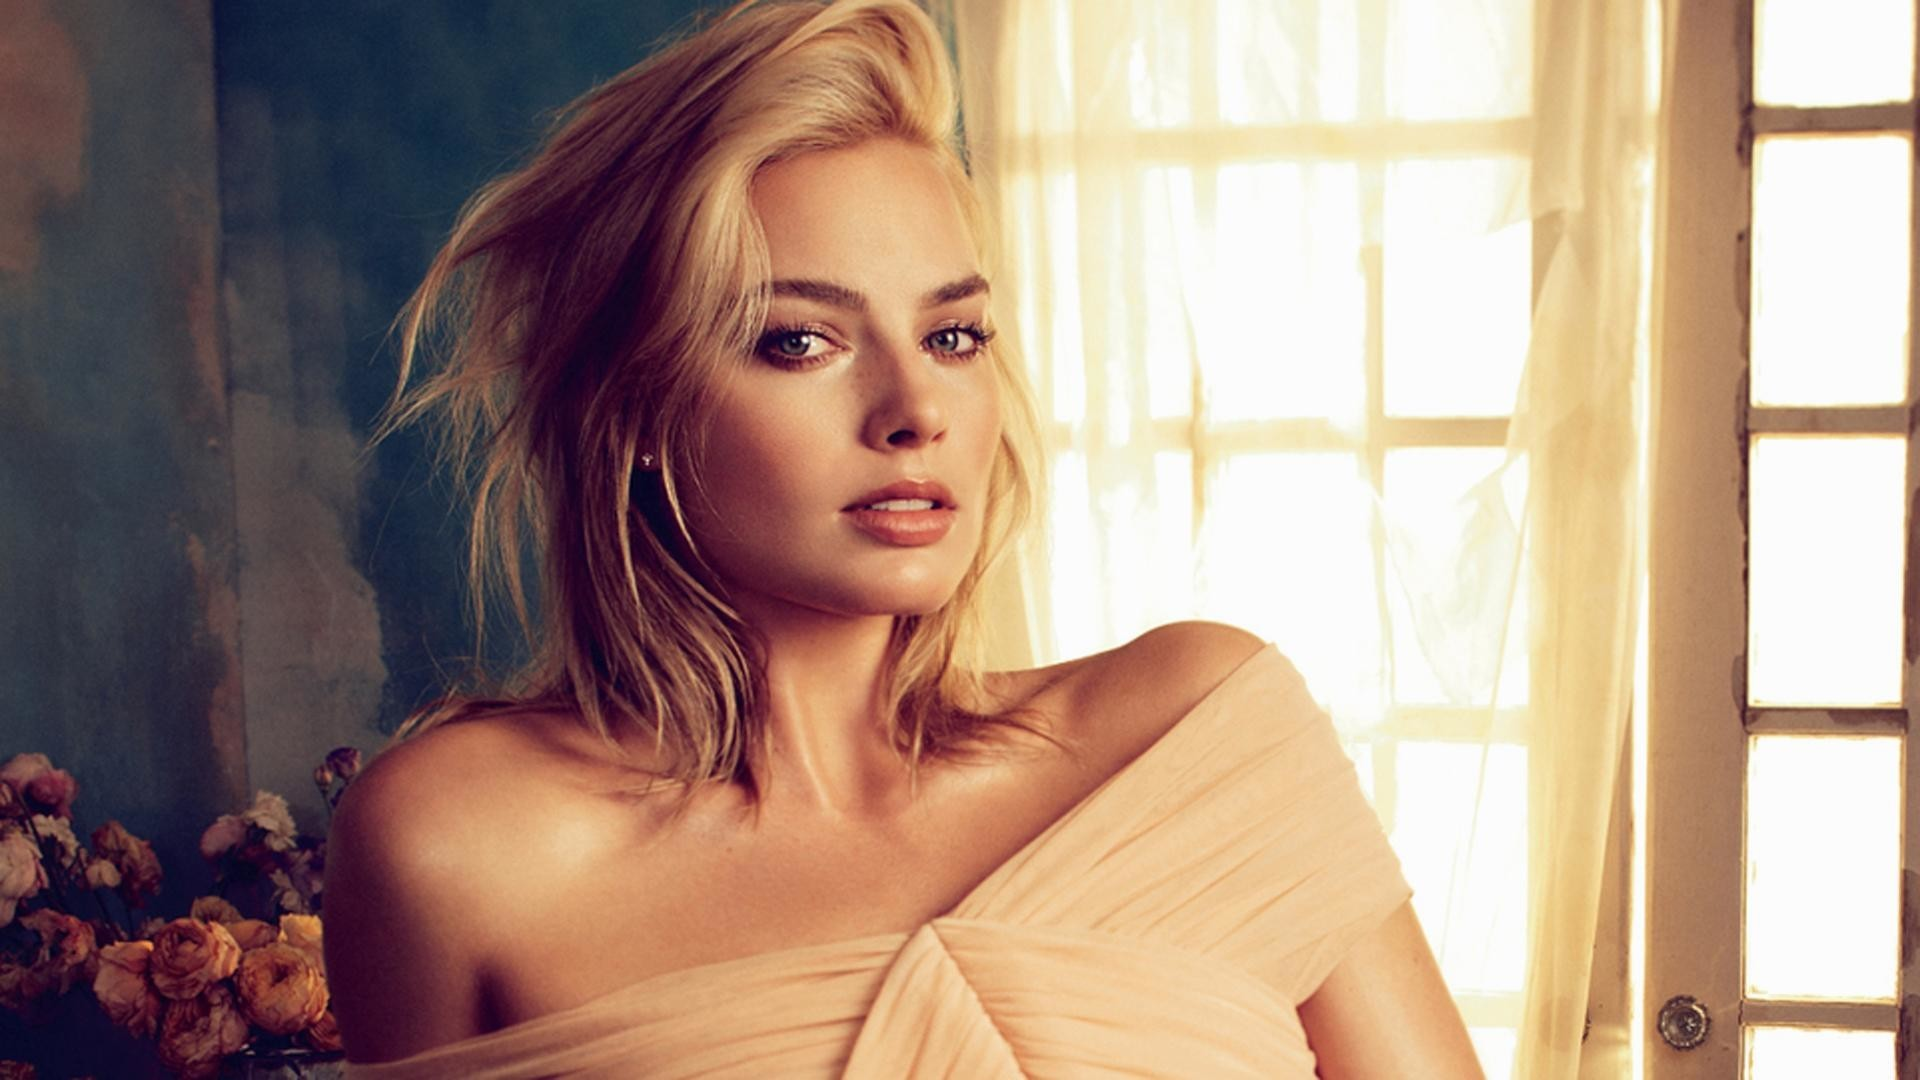 Margot Robbie Harley Quinn Wallpapers 86 Background Pictures